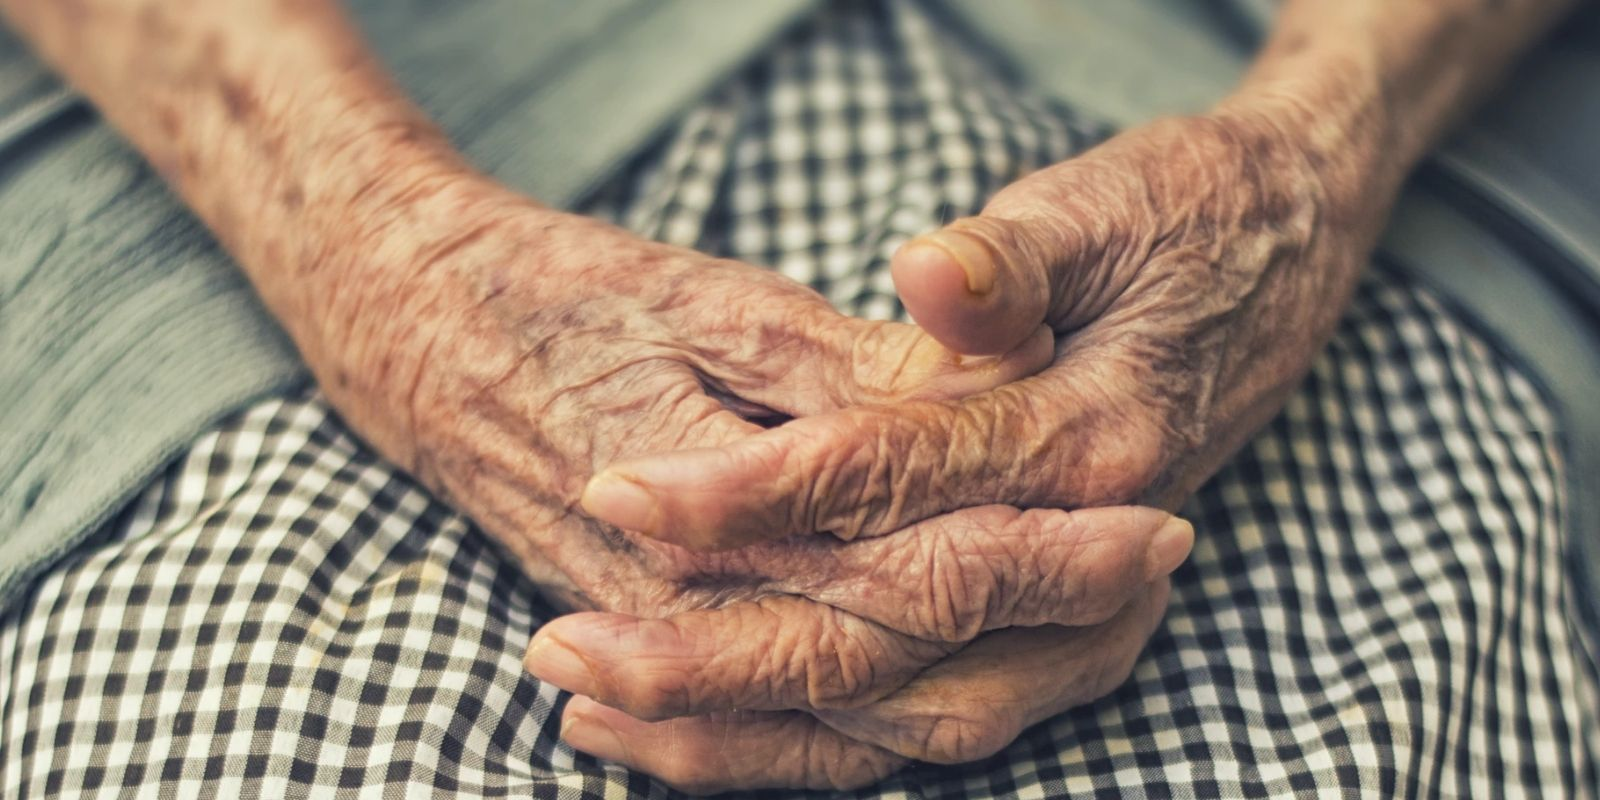 'Majority' of COVID deaths were among those 85+, typically with dementia or Alzheimer's: StatCan